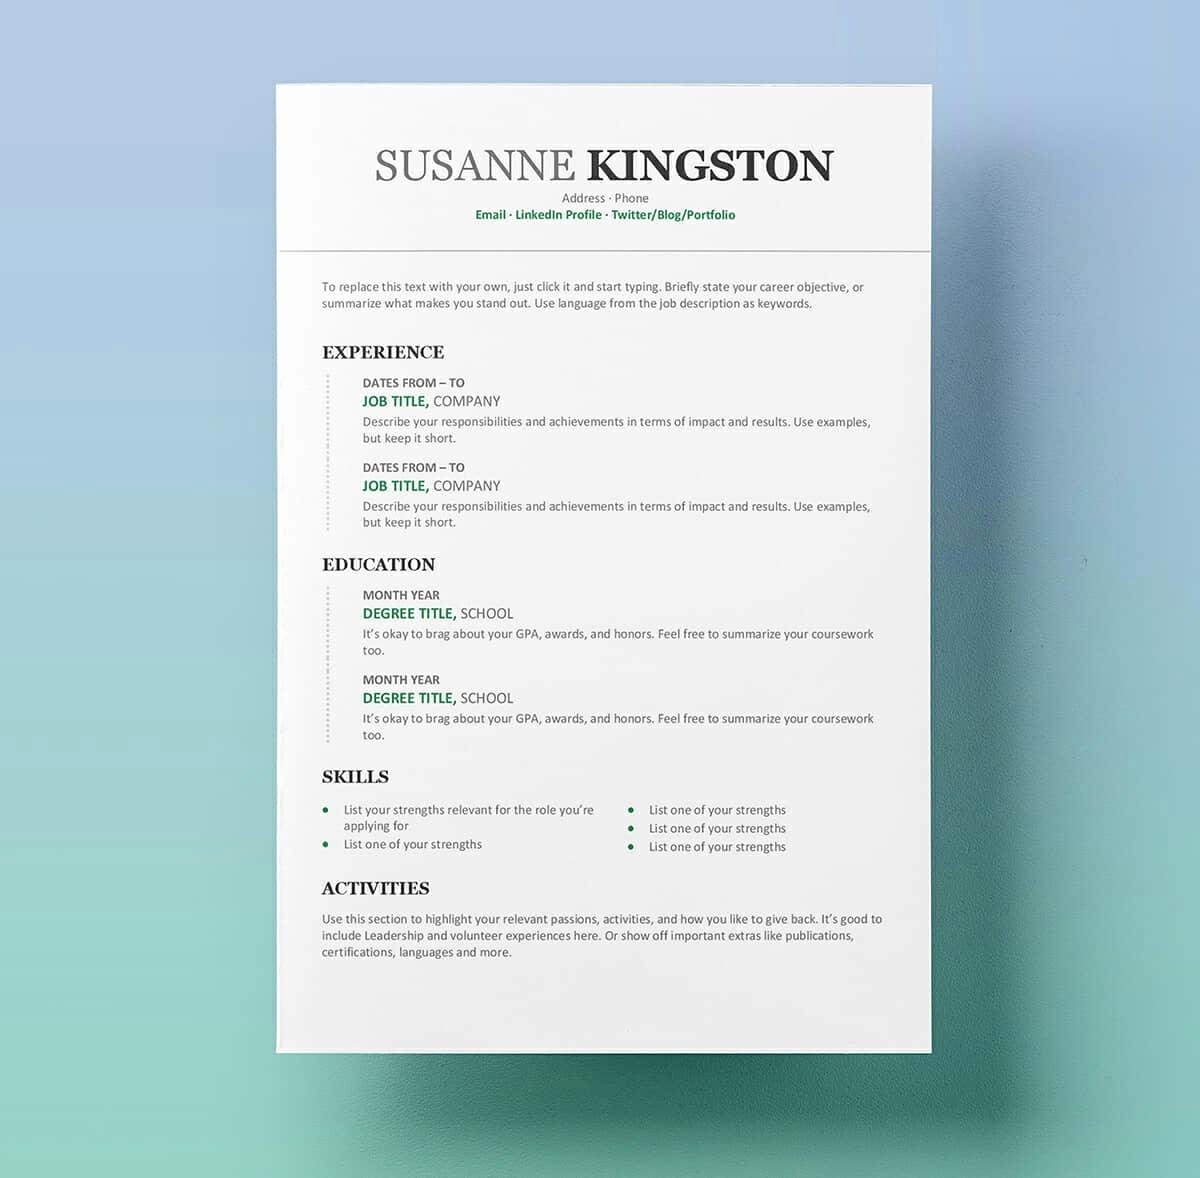 Download Ms Word Resume Template Fresh Resume Templates for Word Free 15 Examples for Download